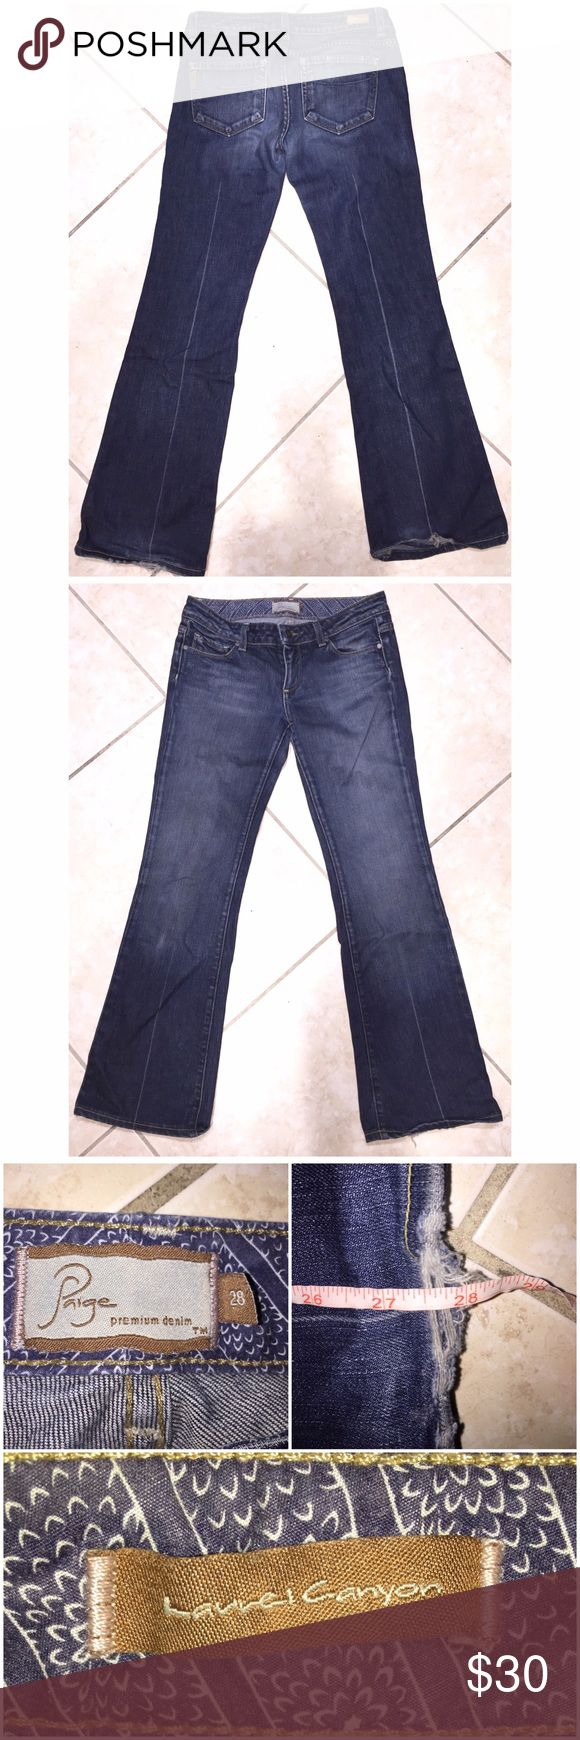 "Paige Jeans Paige ""Laurel Canyon"" Jeans in 28 with a 28"" inseam come preloved and in VERY GOOD condition! The hems are frayed but these jeans are in otherwise great condition. Low rise, boot cut and medium wash. Perfect every day jeans! My prices fluctuate from time to time. Catch items when the prices are low!❤️ Paige Jeans Jeans Boot Cut"